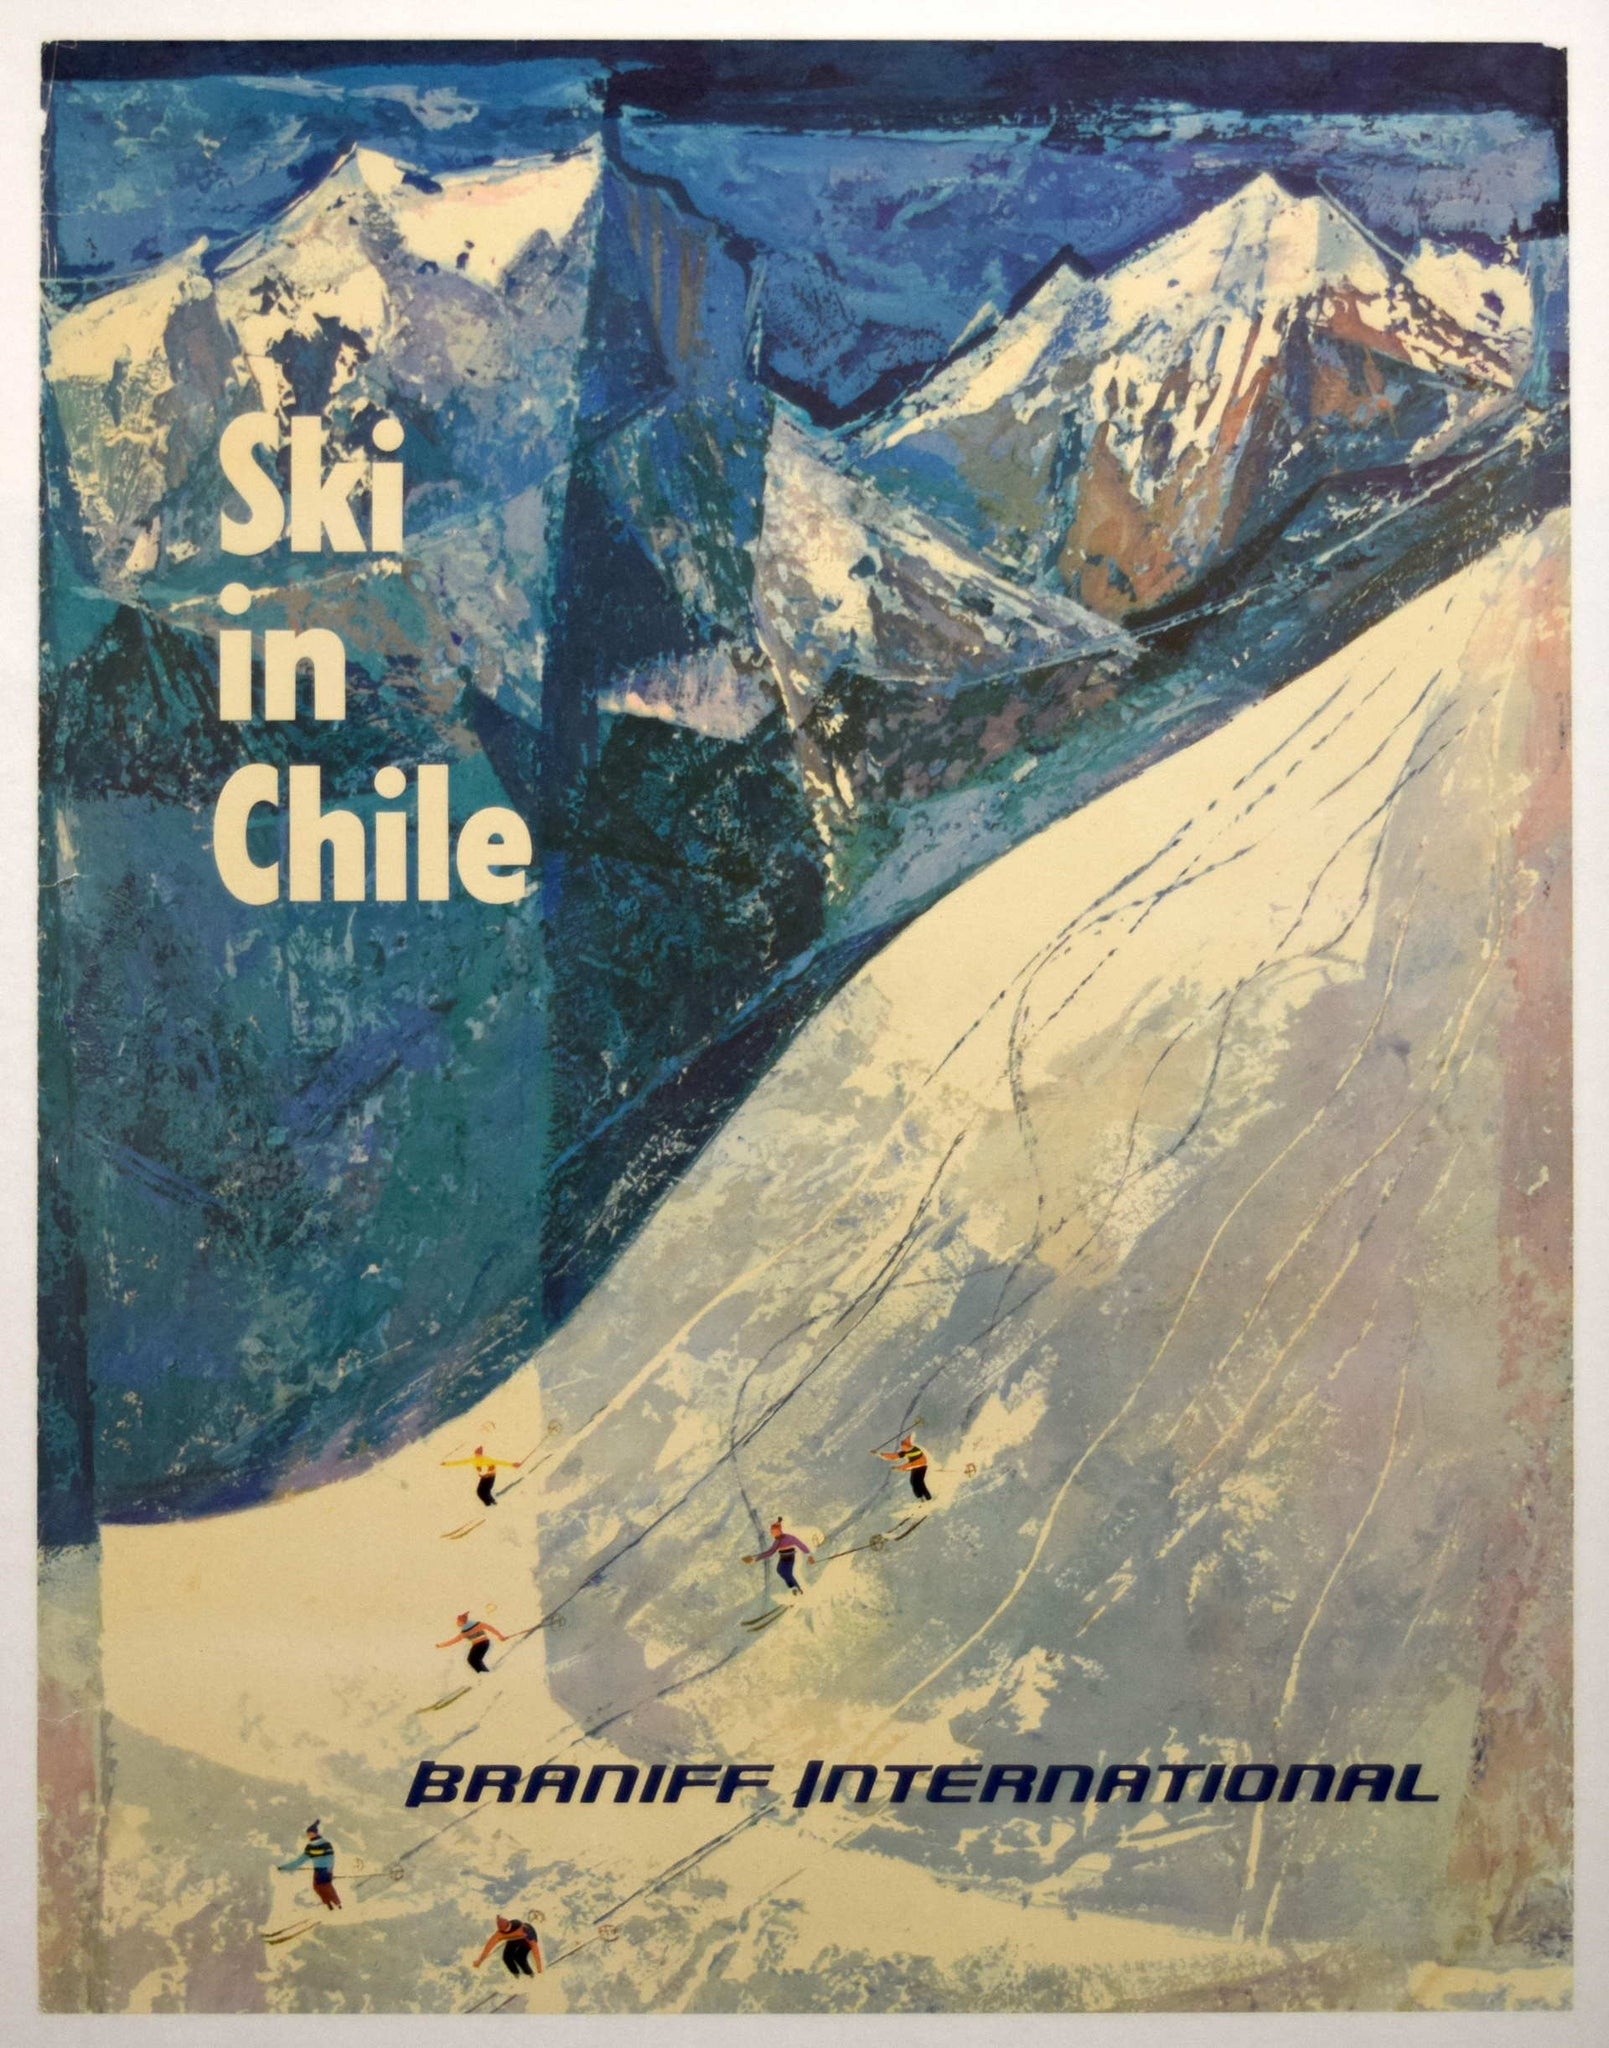 Braniff International Chile